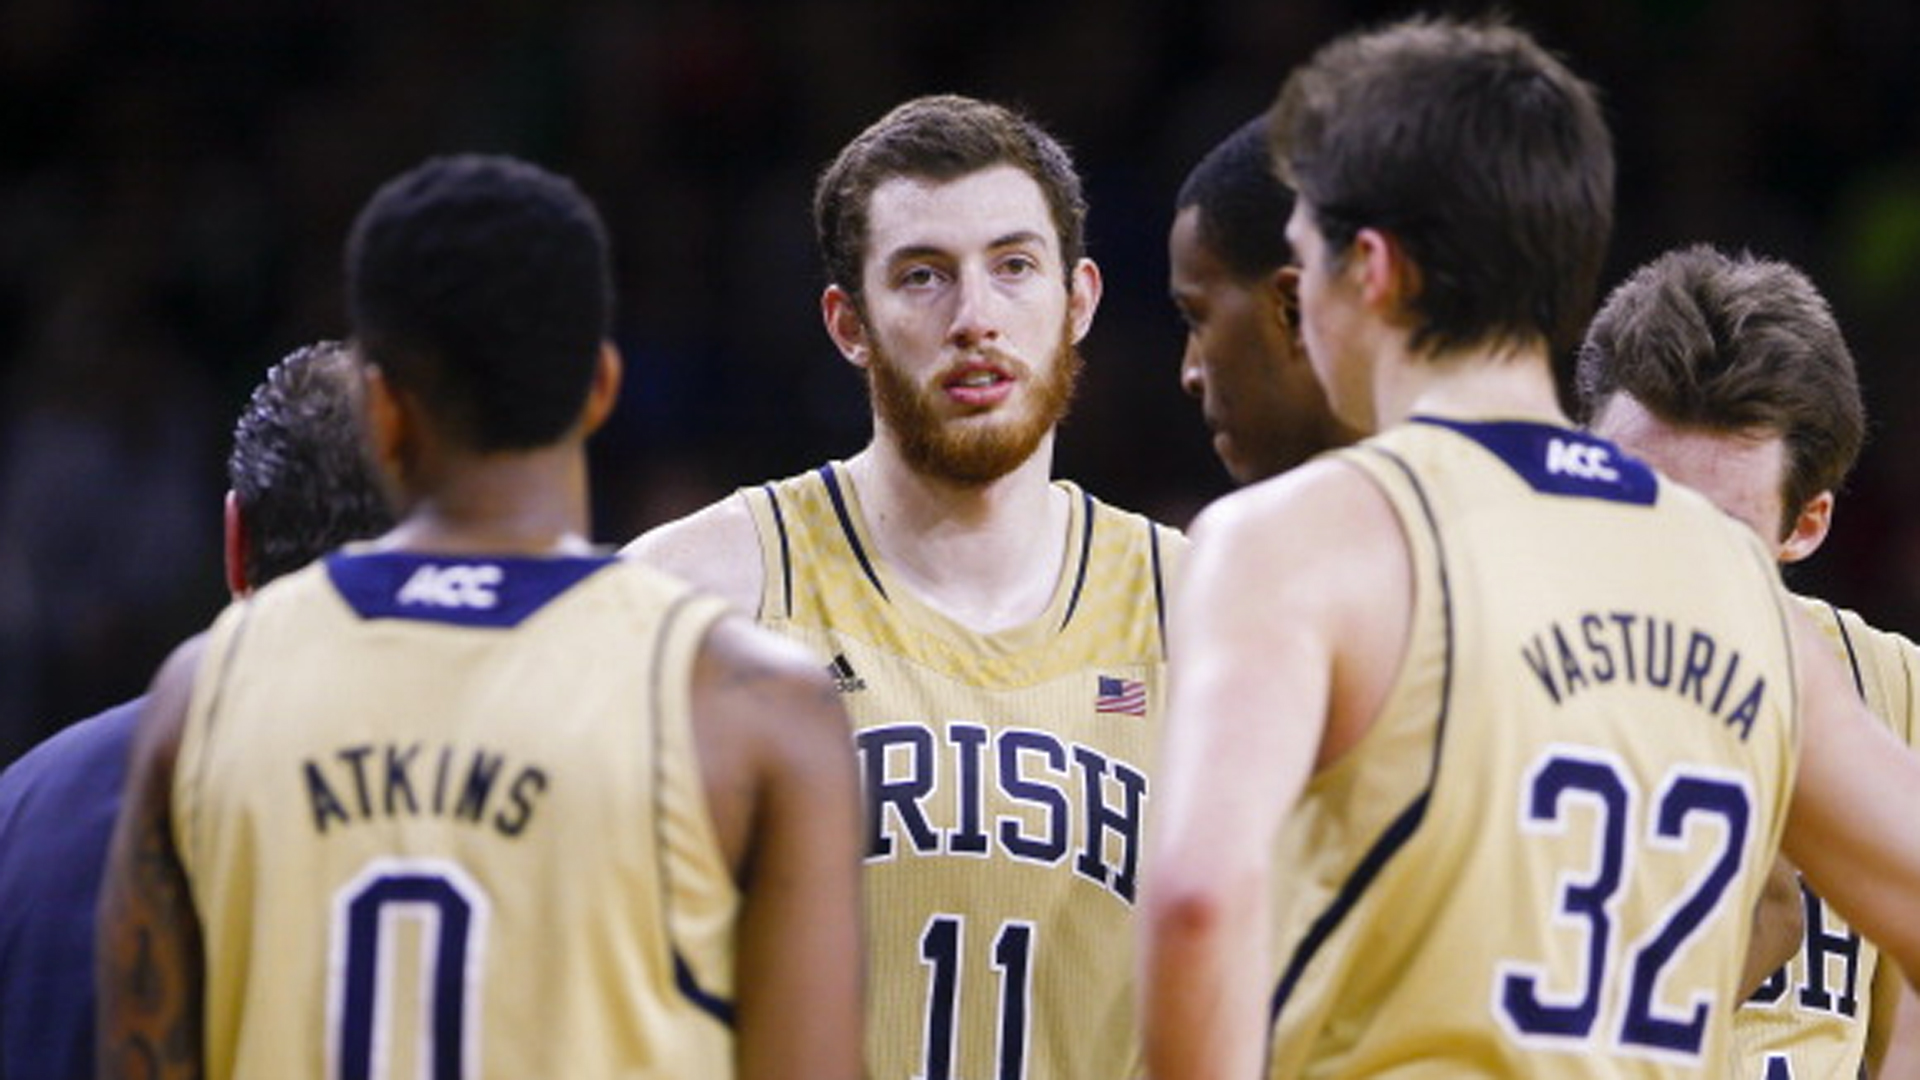 Former Spartans, Irish player tries to rip NCAA, reveals drug test cover-up